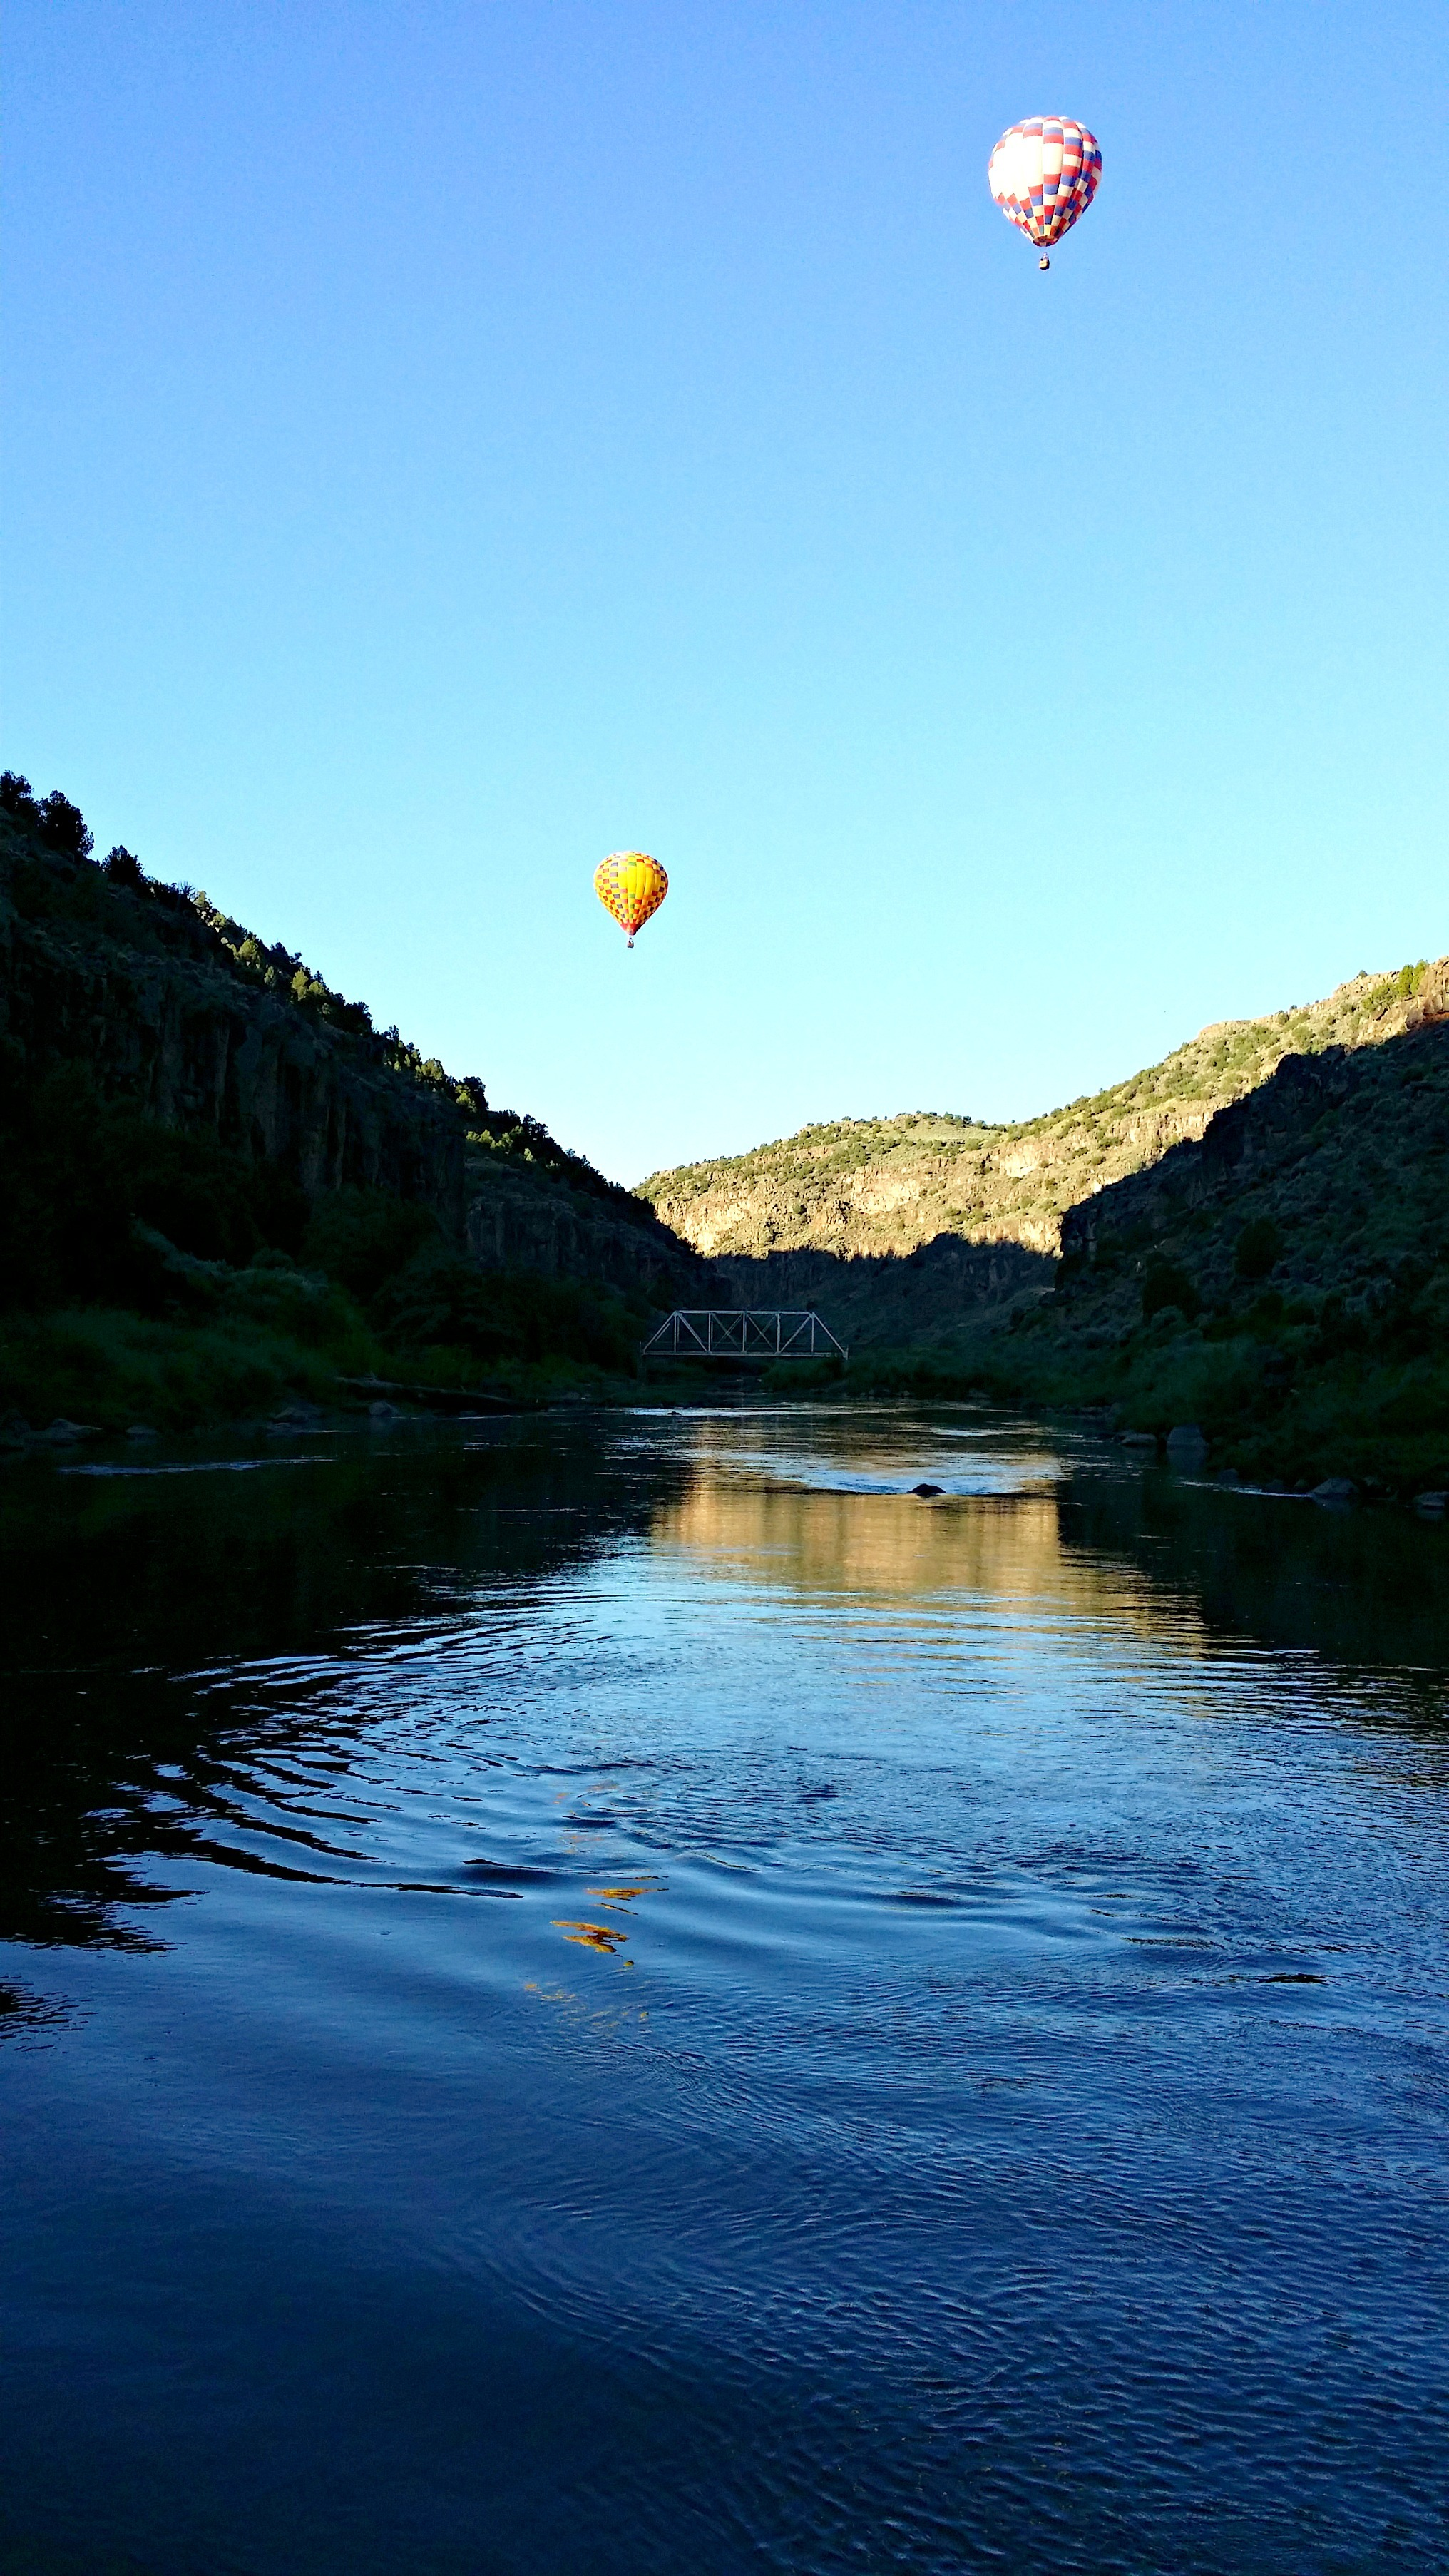 Hot-air ballooning in Taos - Jenography